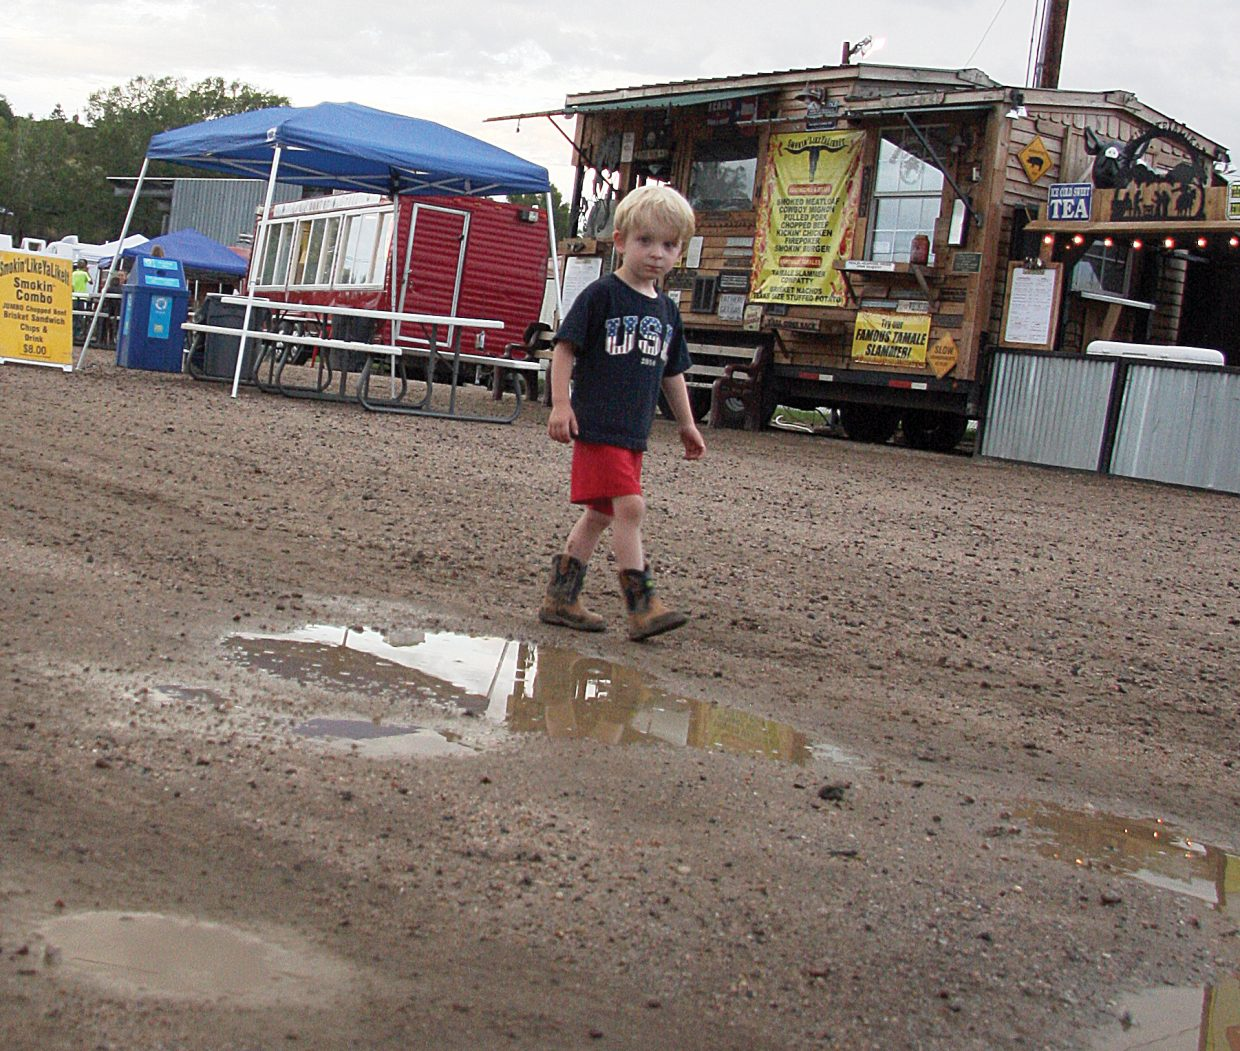 It's not a bad idea to have a good pair of boots in order to navigate the midway at the Routt County Fair some years. When it rains, visitors must avoid mud puddles in the areas where vendors set up tents and sell food and crafts to the visitors. A new GoCo grant will help solve that problem at the fairgrounds in Hayden.